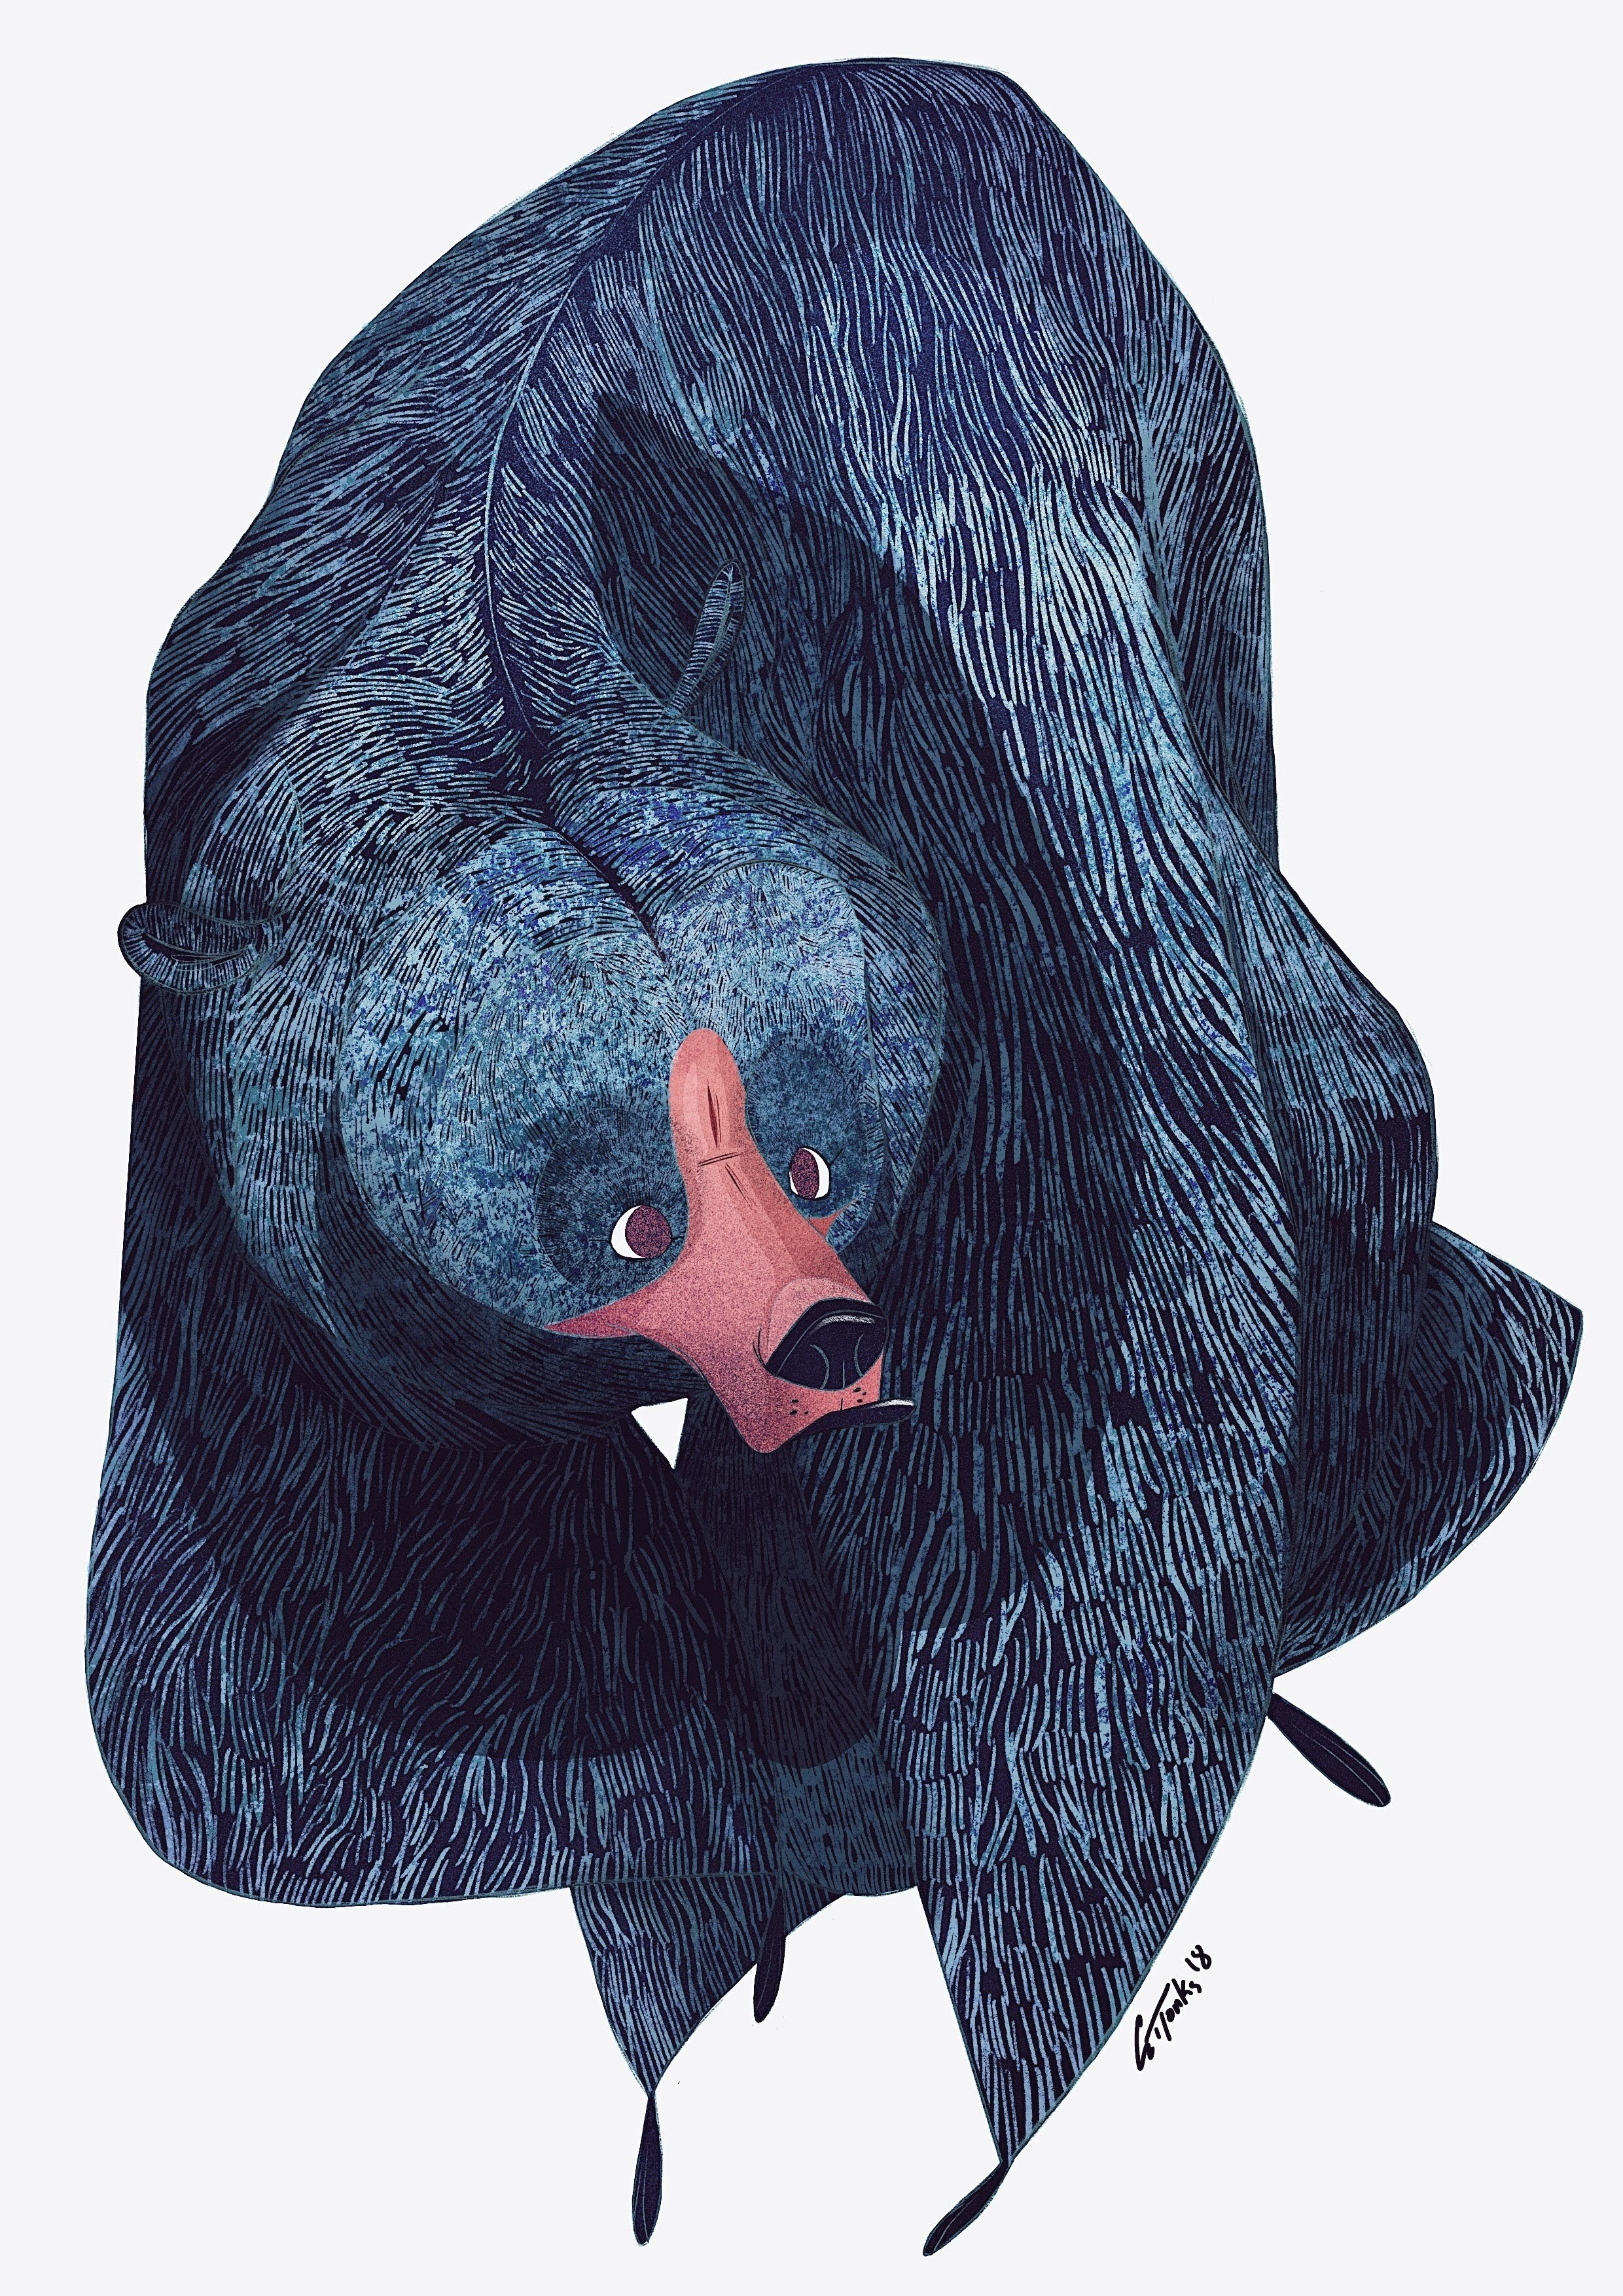 bear illustration george tonks